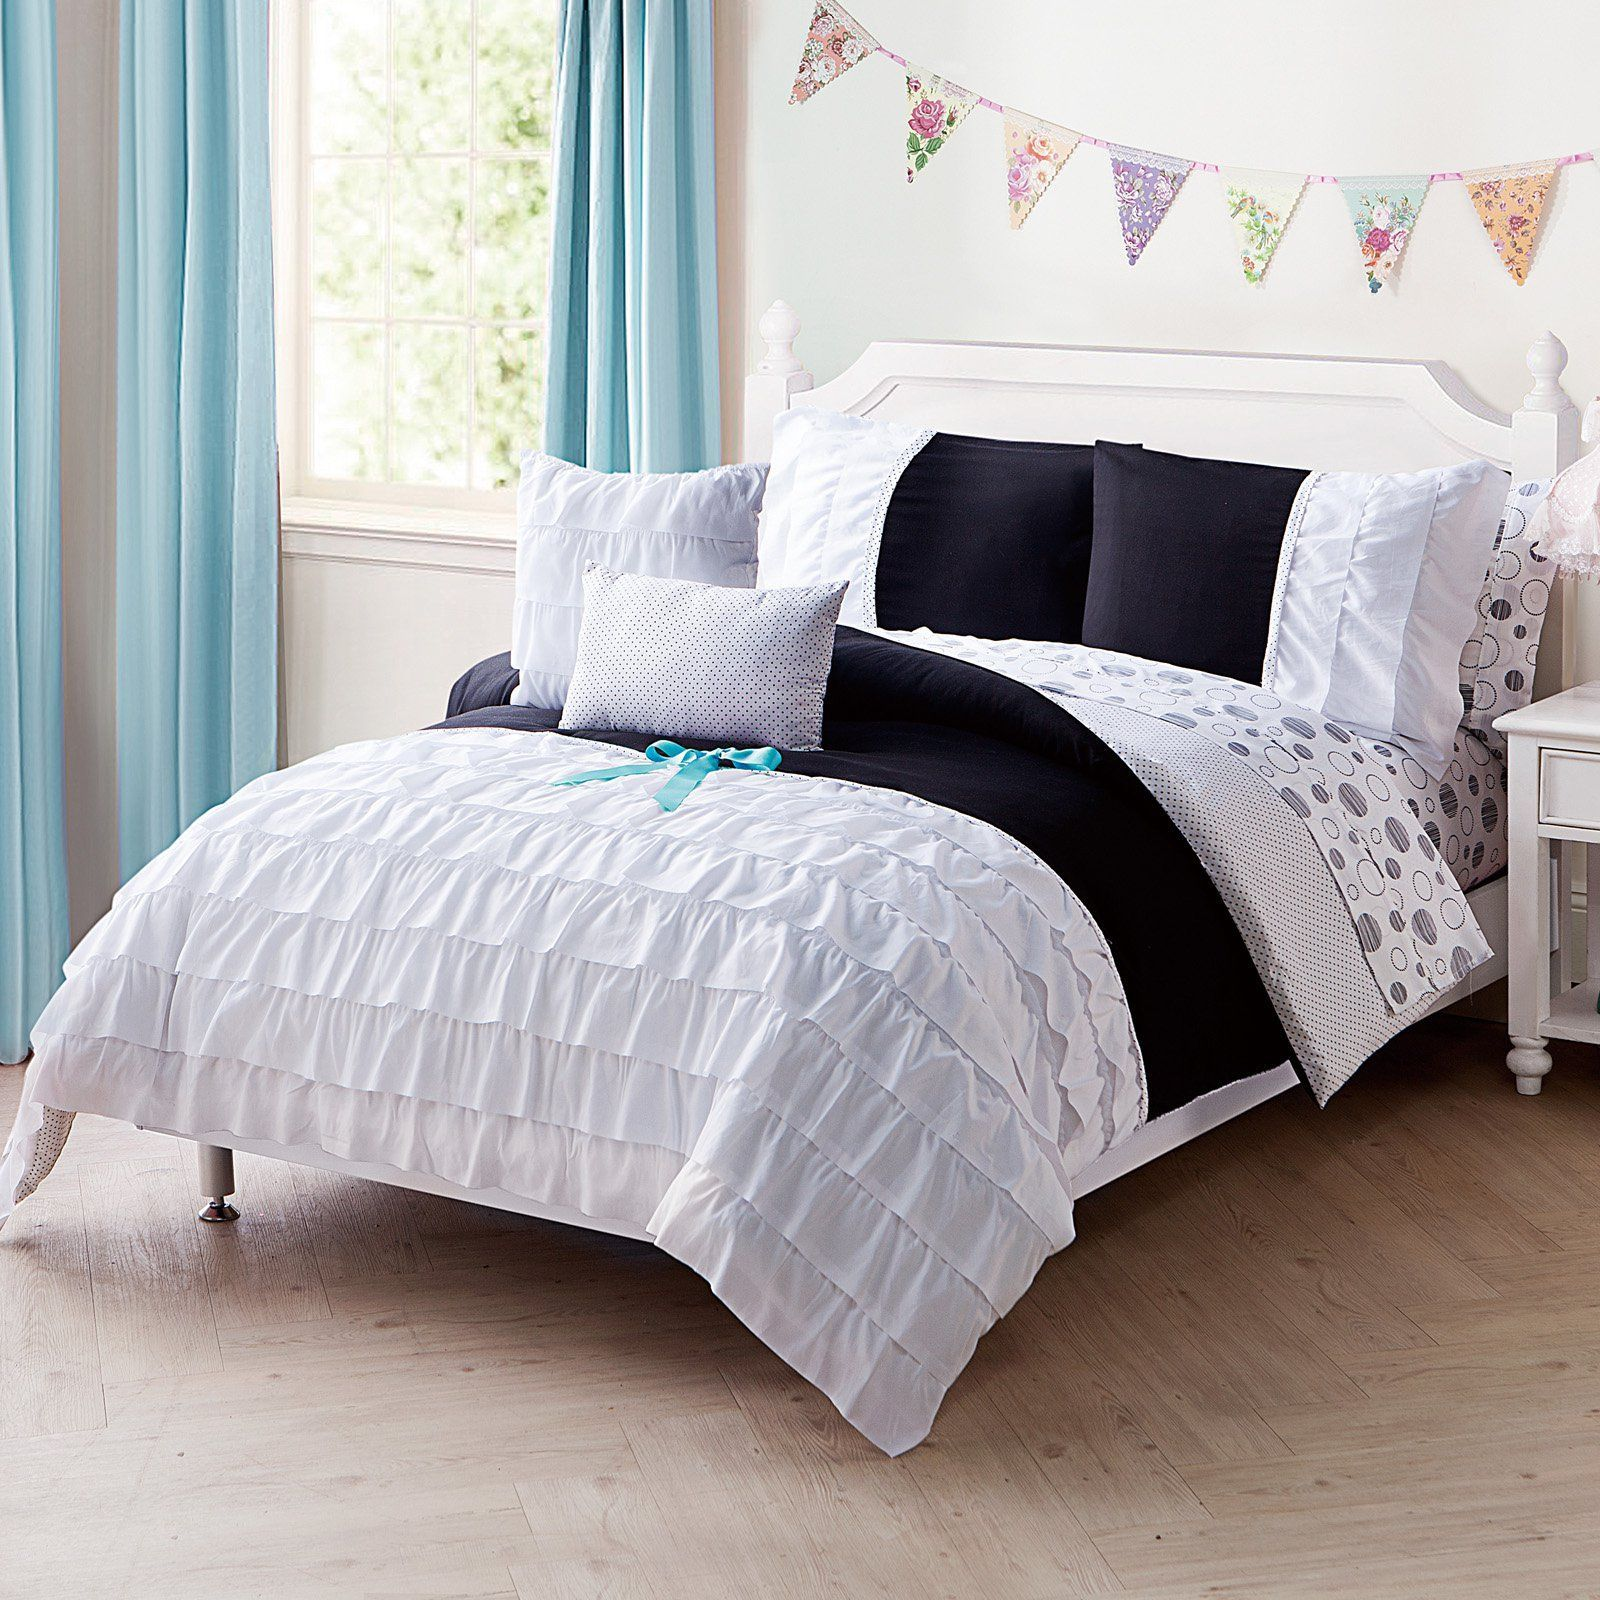 Amber 9 Piece Bed in Bag Set by Victoria Classics - AB1-BIB-FULL-IN-BW